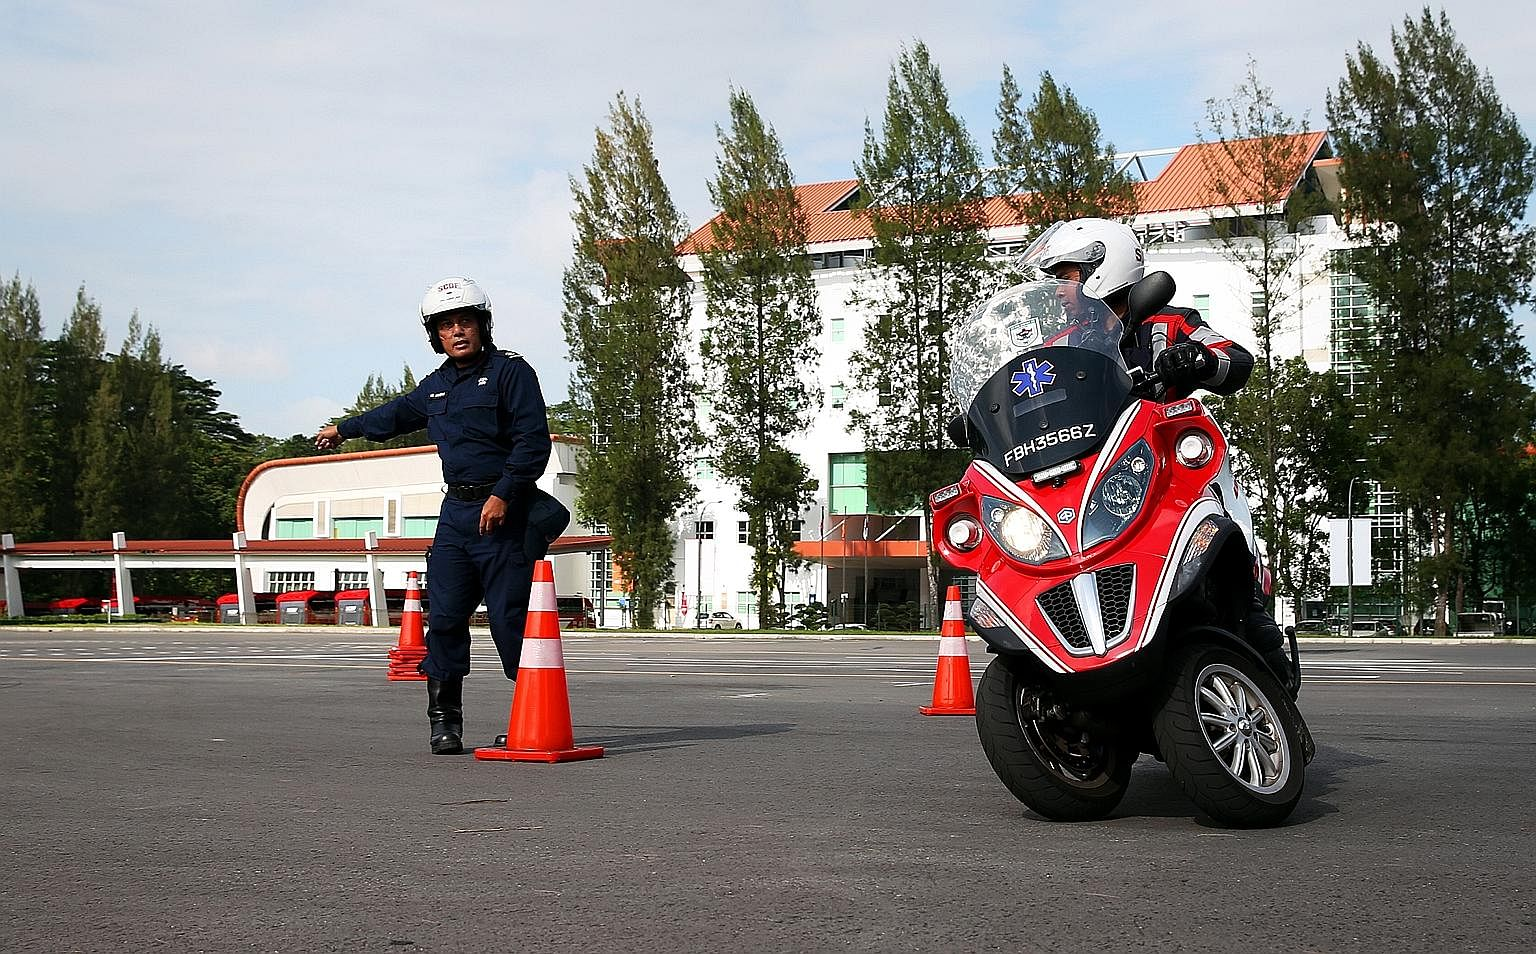 When a turnout occurs, firebiker Md Hilmi Md Fuad slides down a pole (left) to get to his three-wheeled scooter quickly. At the Civil Defence Academy in Jalan Bahar, firebikers like Staff Sergeant Hilmi are required to go through a riding course to b